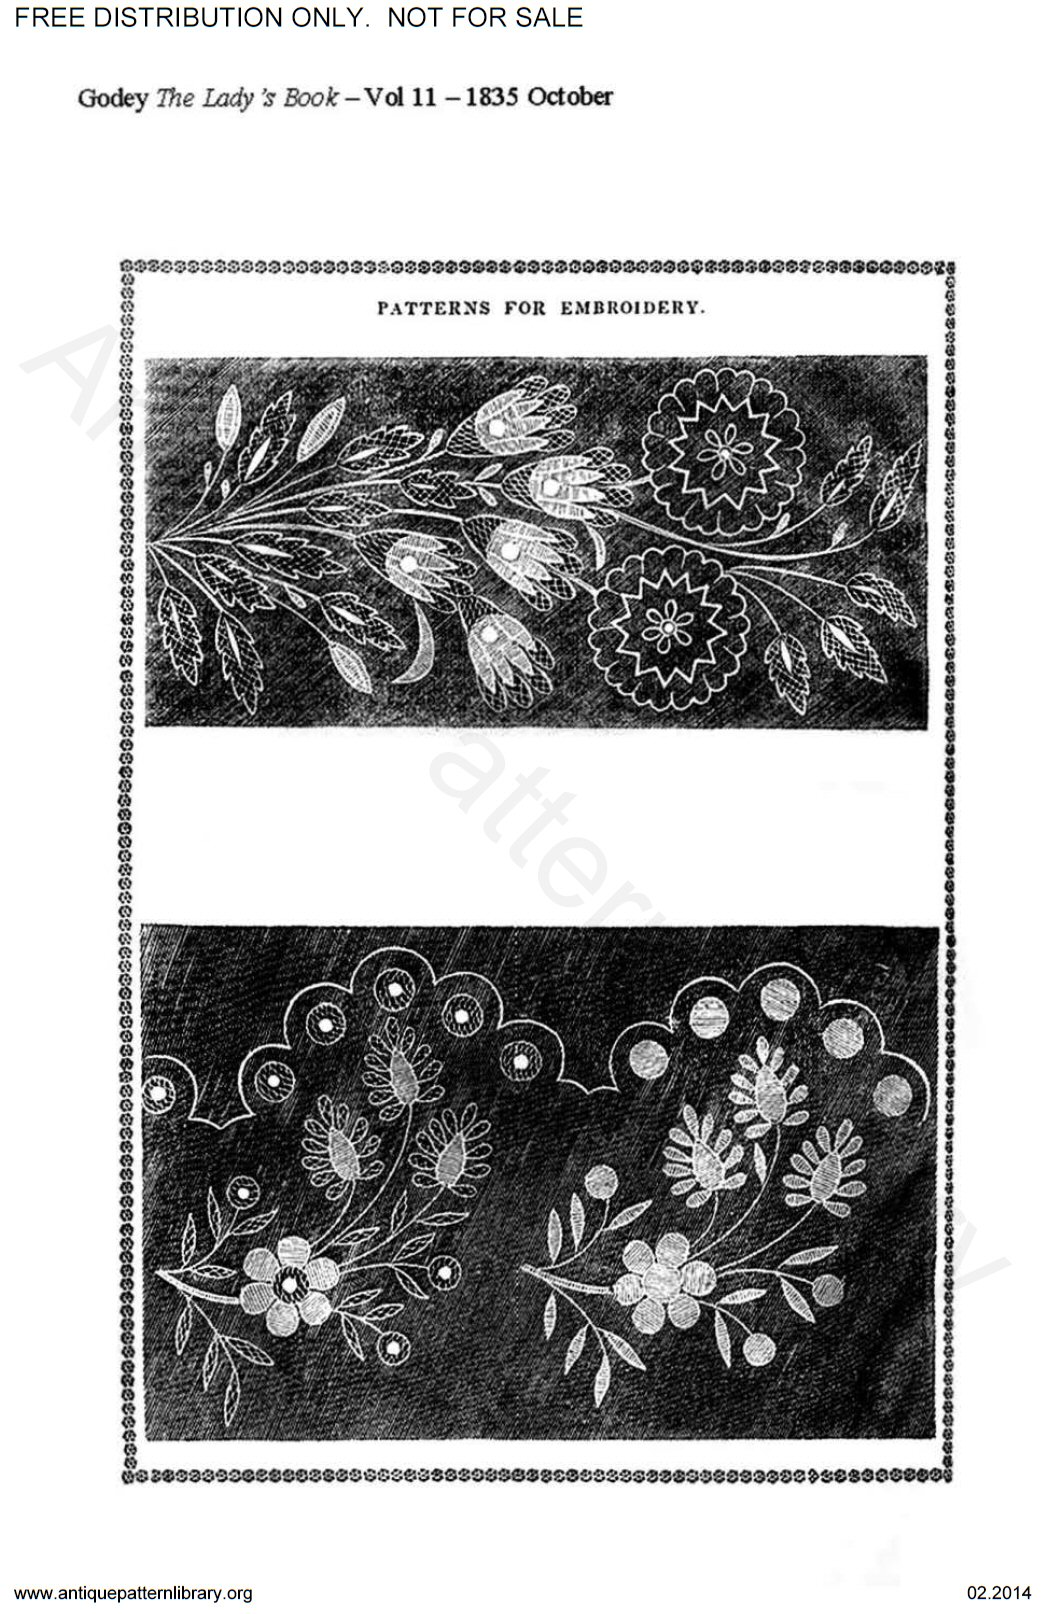 C-HW002 Godey's needlework patterns